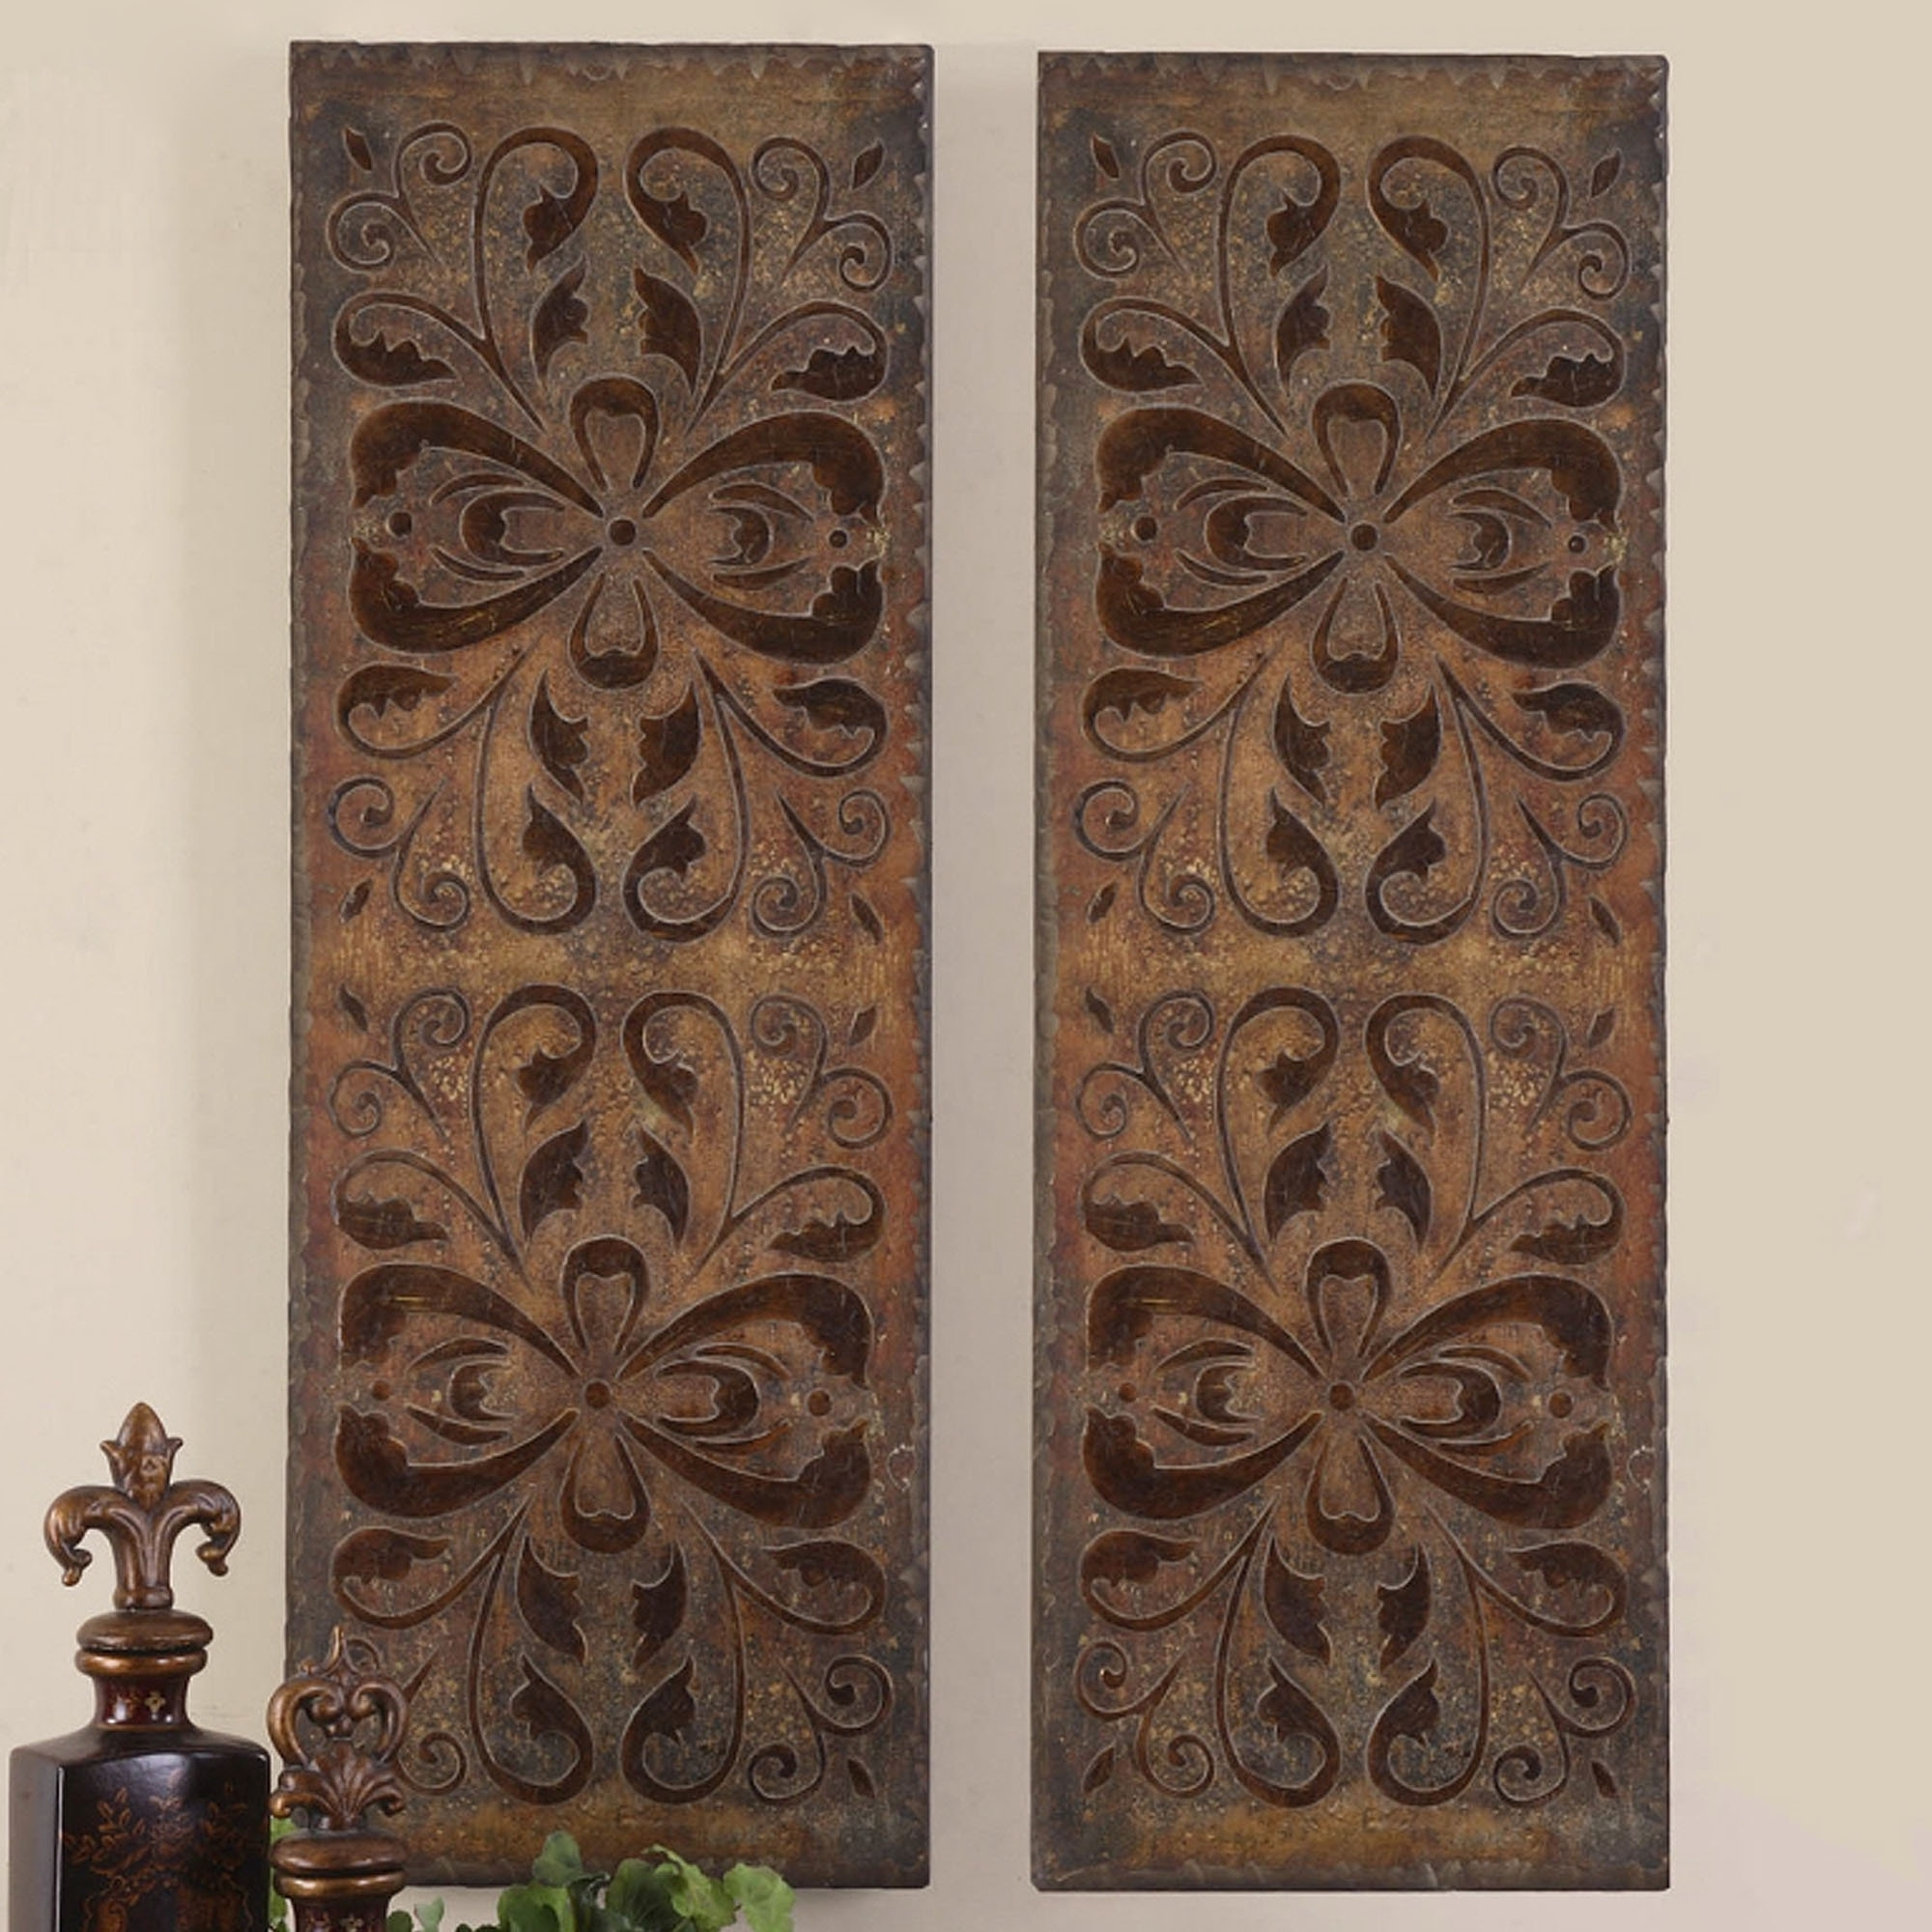 Famous Wood Carved Wall Art Panels Regarding Home Design : Lovely Wood Panel Wall Decor 5 Carved Panels Art (View 2 of 15)